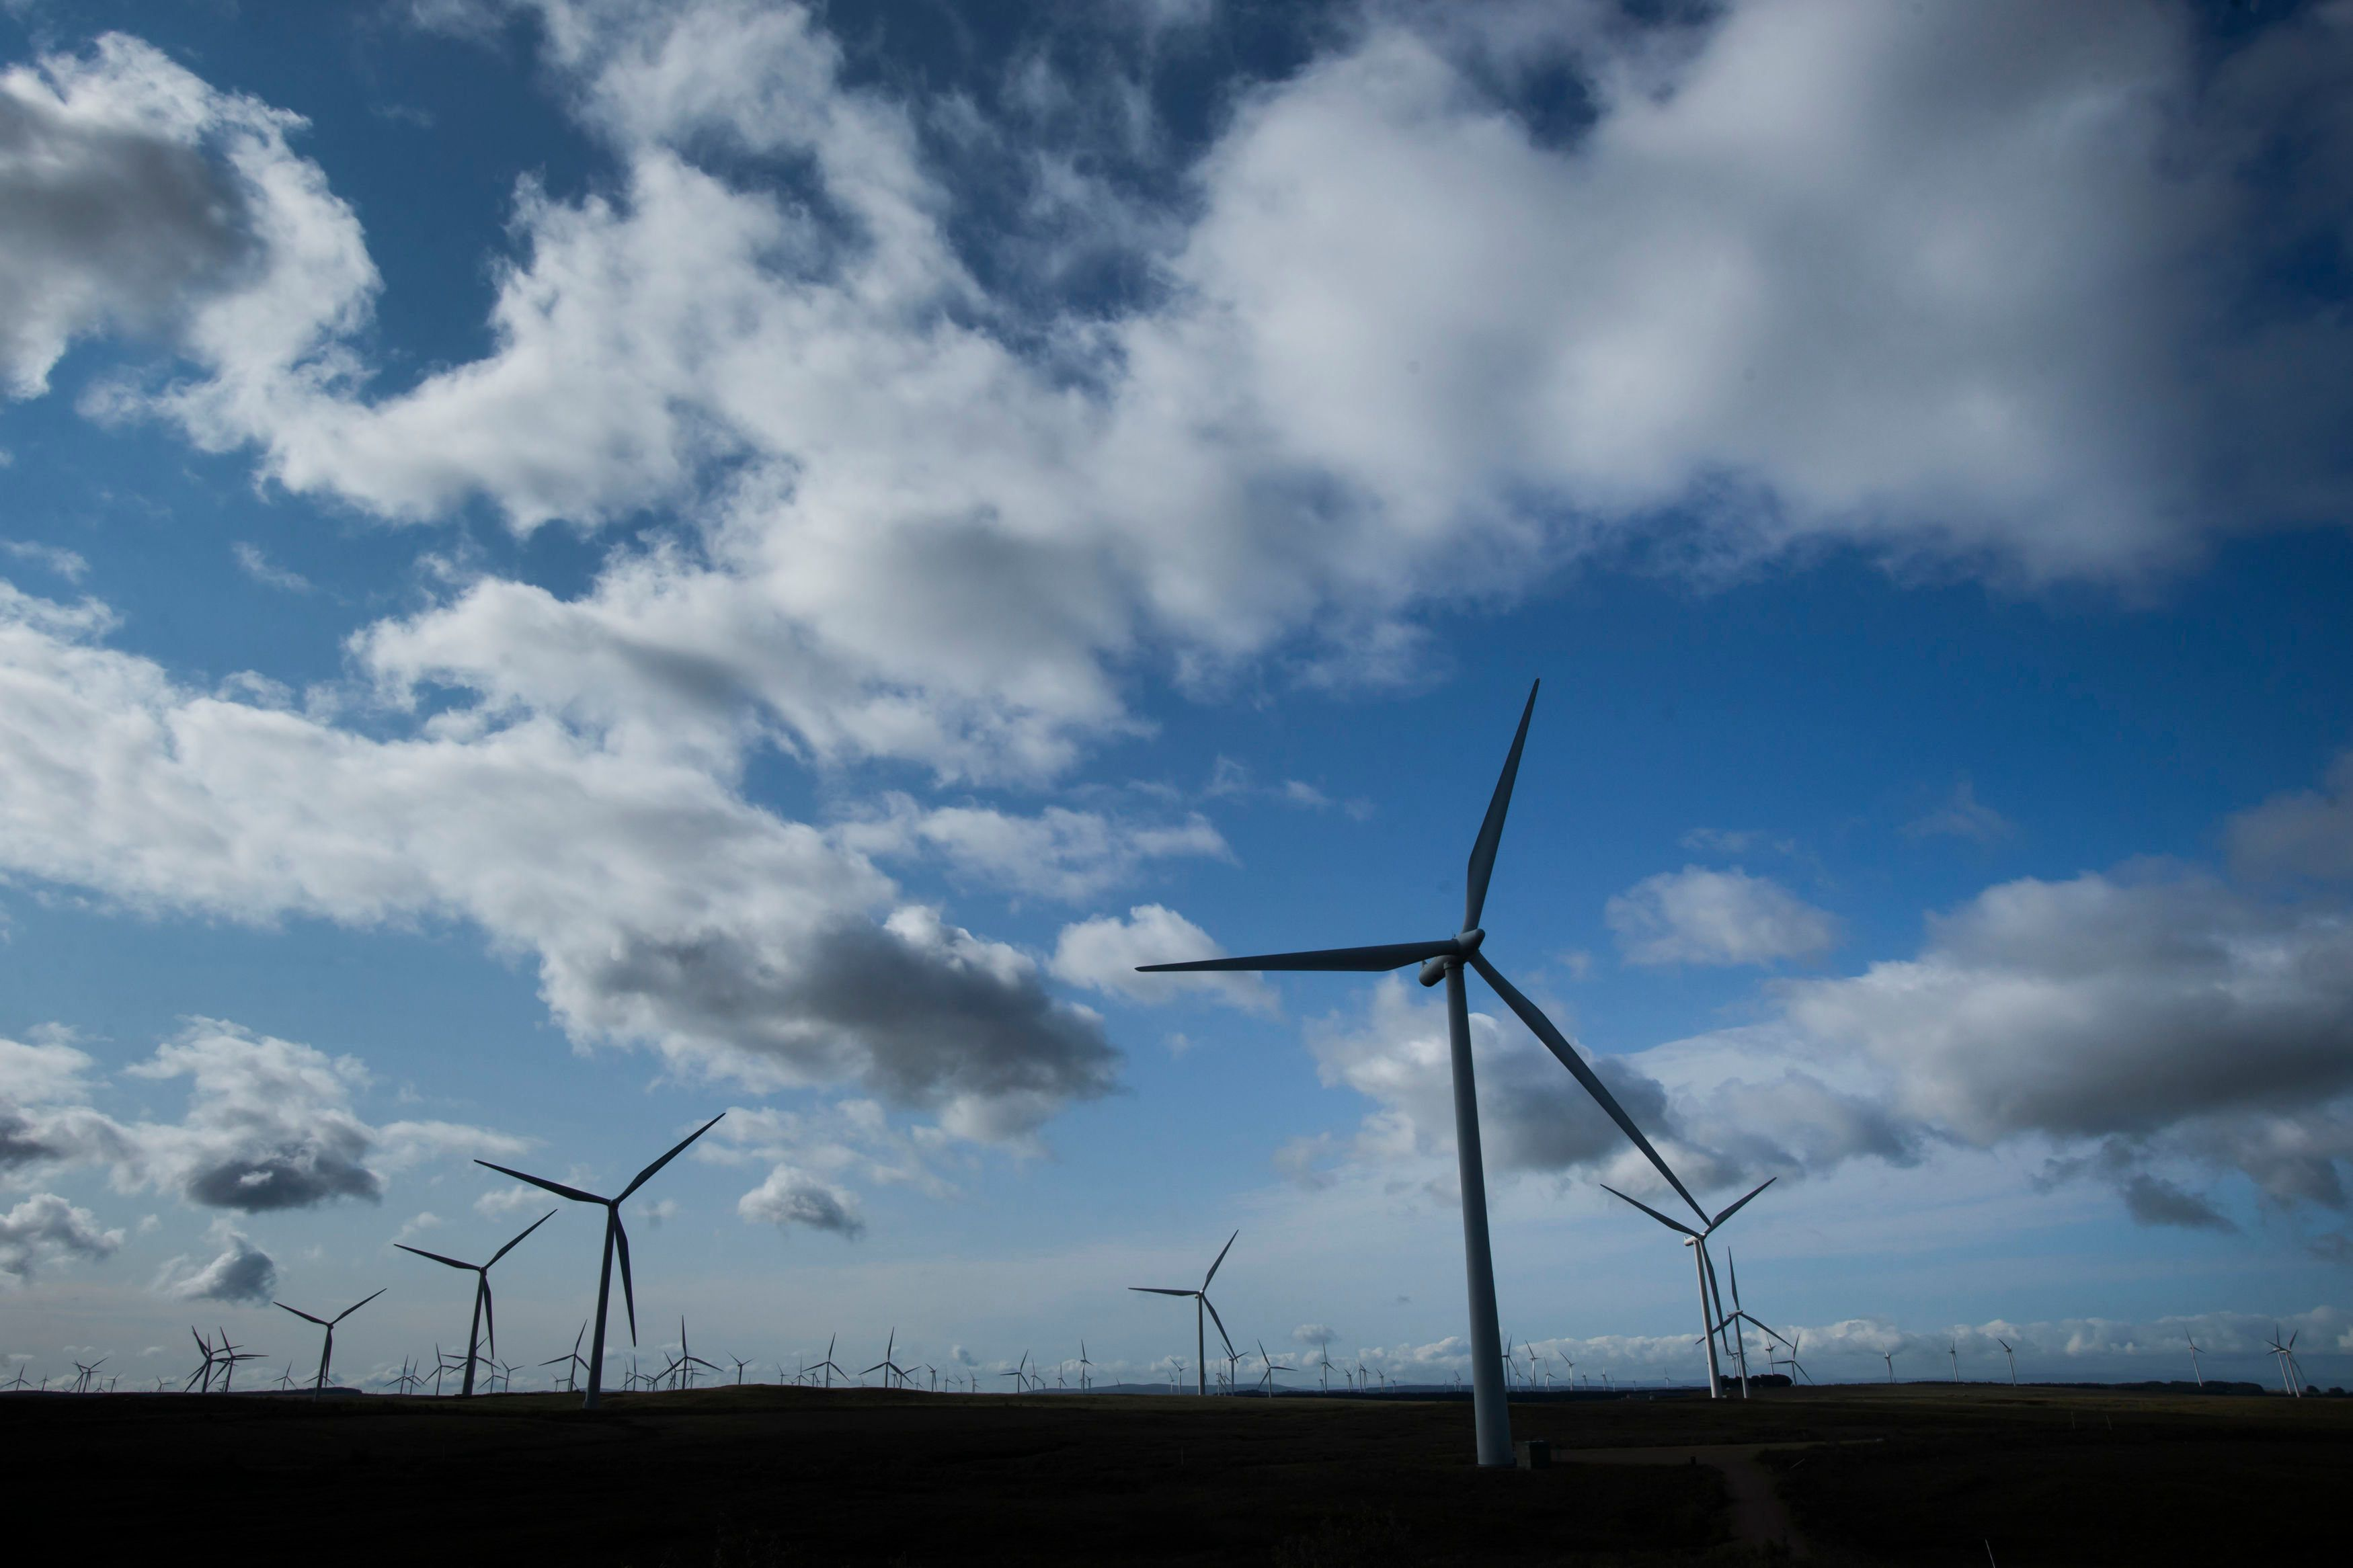 Renewable energy projects win clean power auction